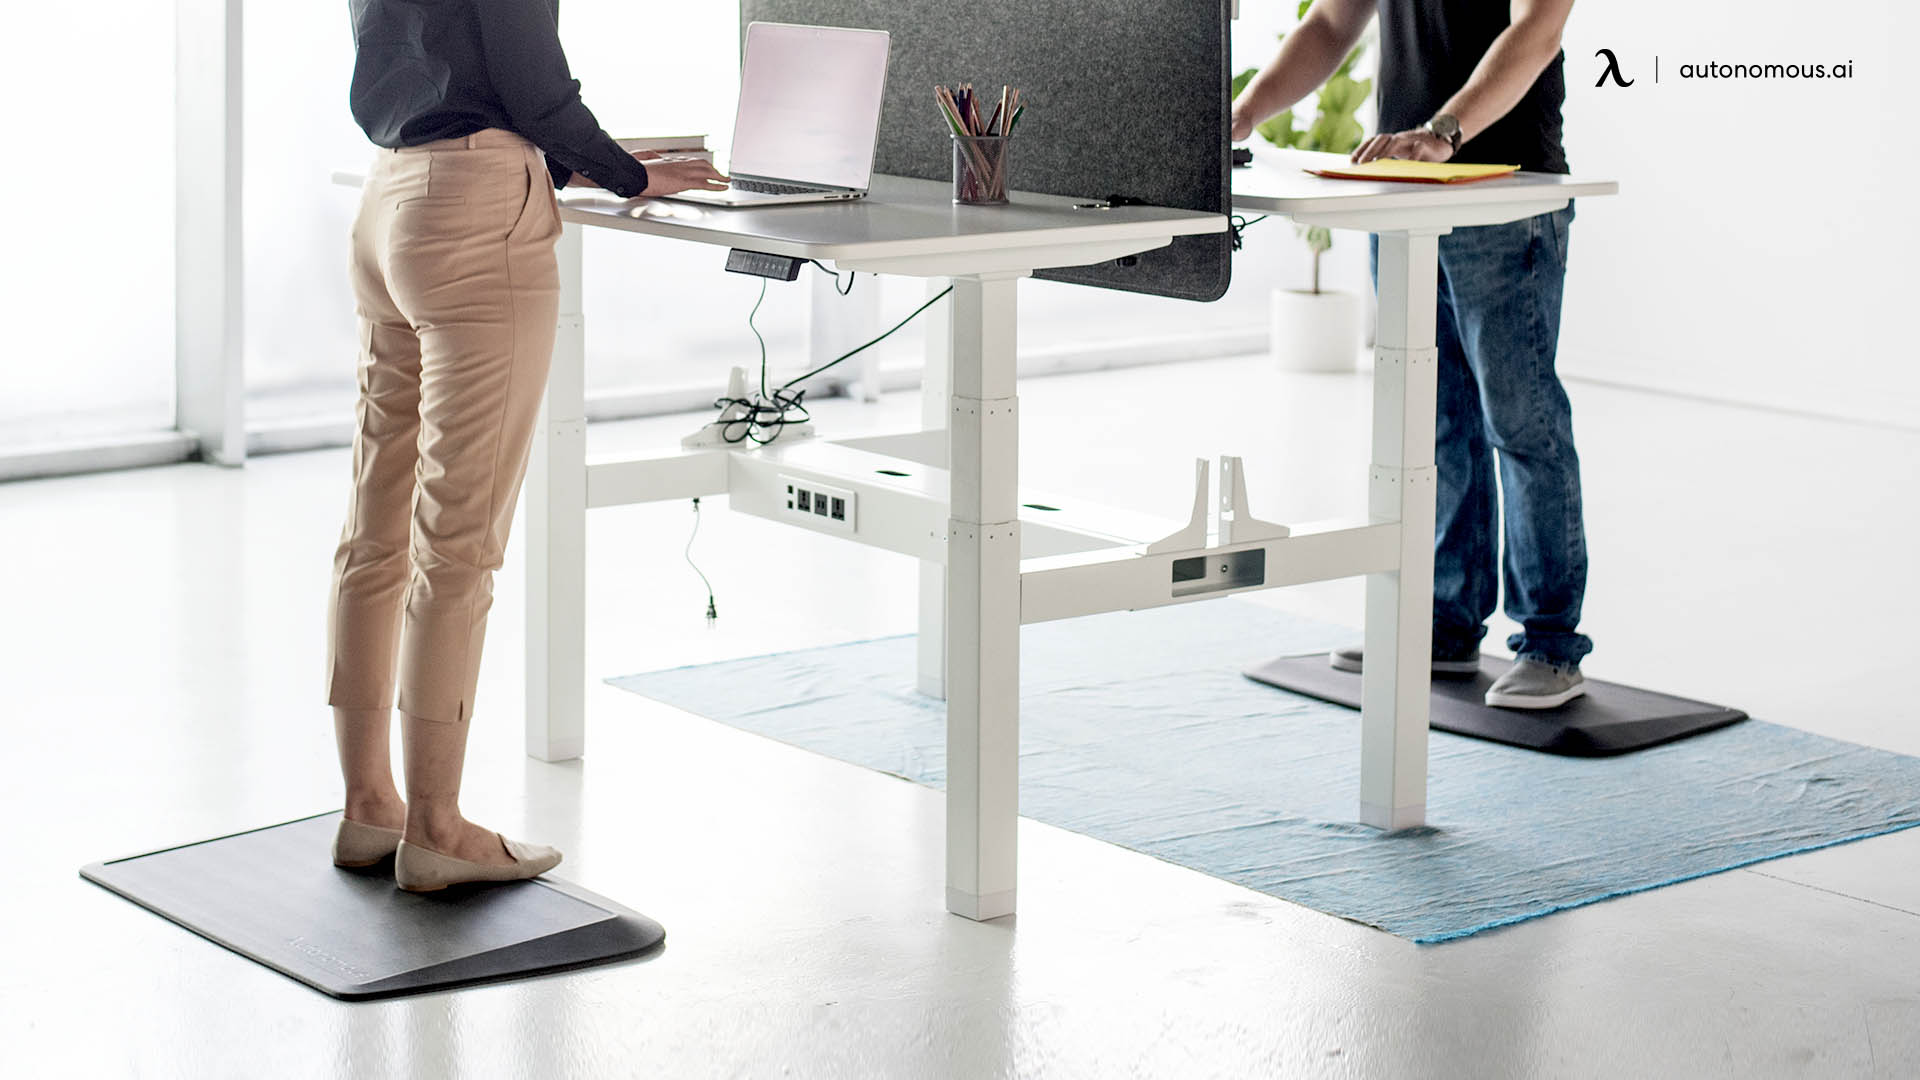 What are the benefits of anti-fatigue mats?